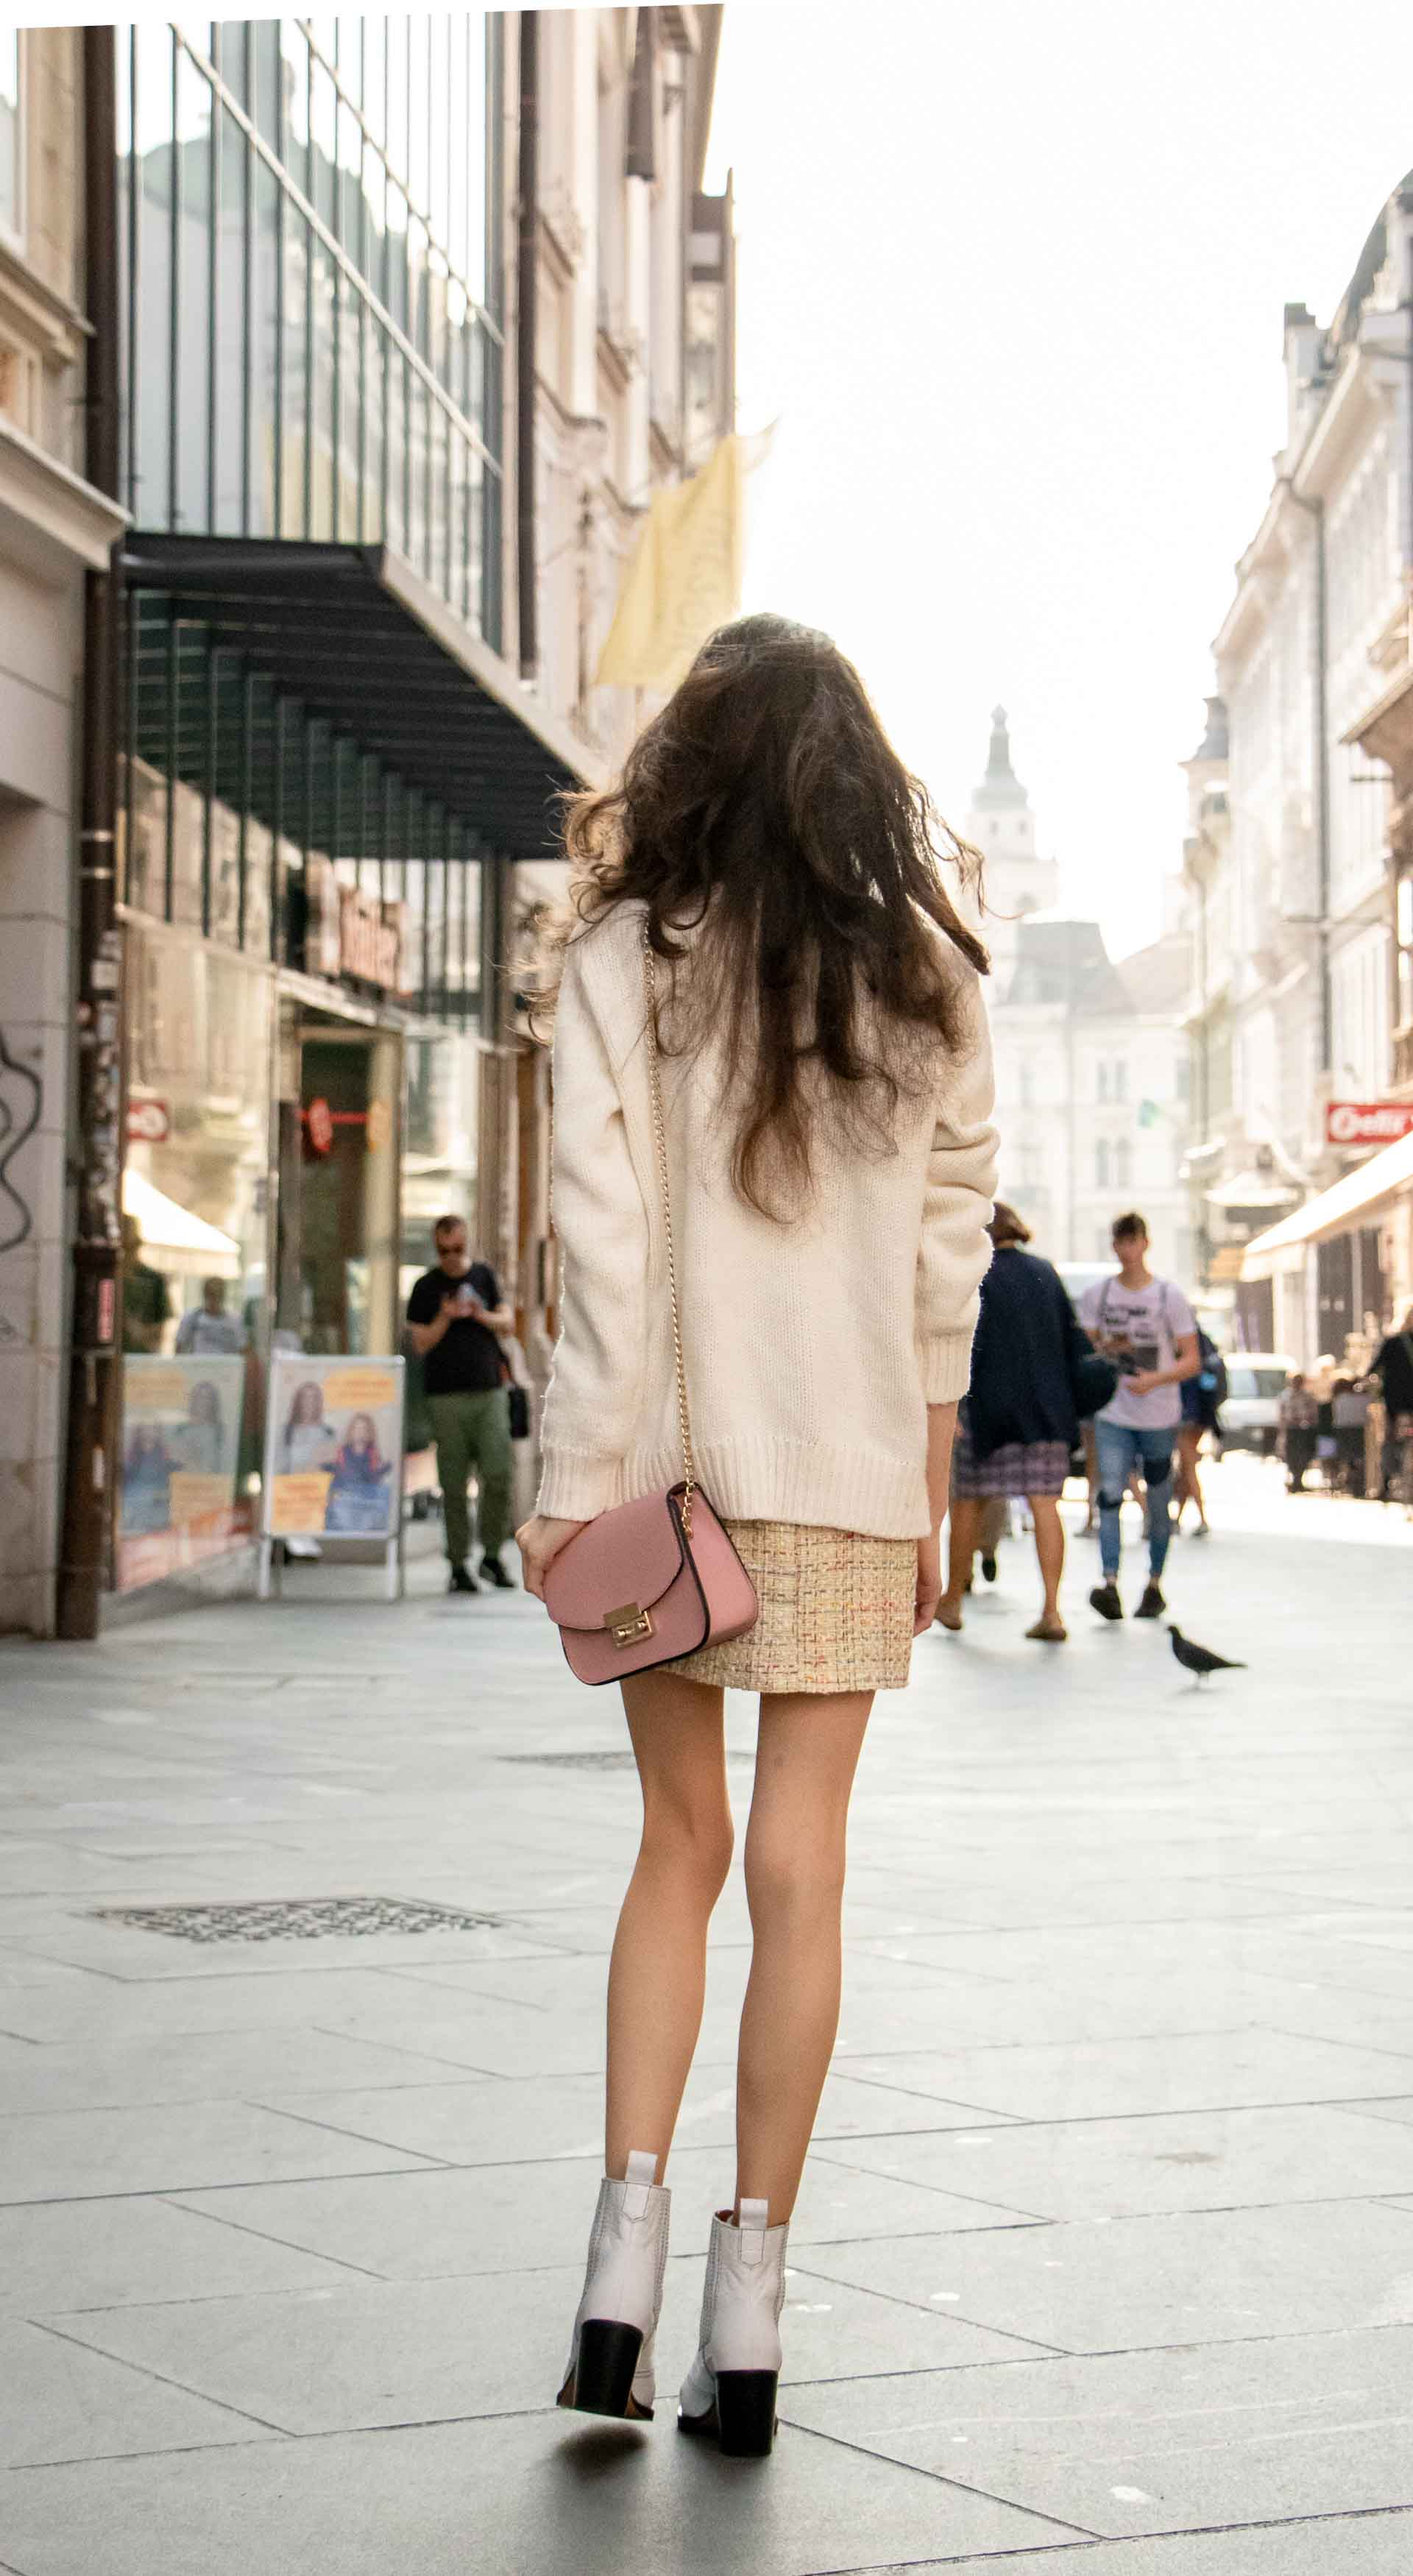 Beautiful Slovenian Fashion Blogger Veronika Lipar of Brunette from Wall wearing white Ganni Western boots, yellow tweed skirt, white turtleneck sweater, chain strap shoulder bag for brunch on the street in the morning in Ljubljana in fall